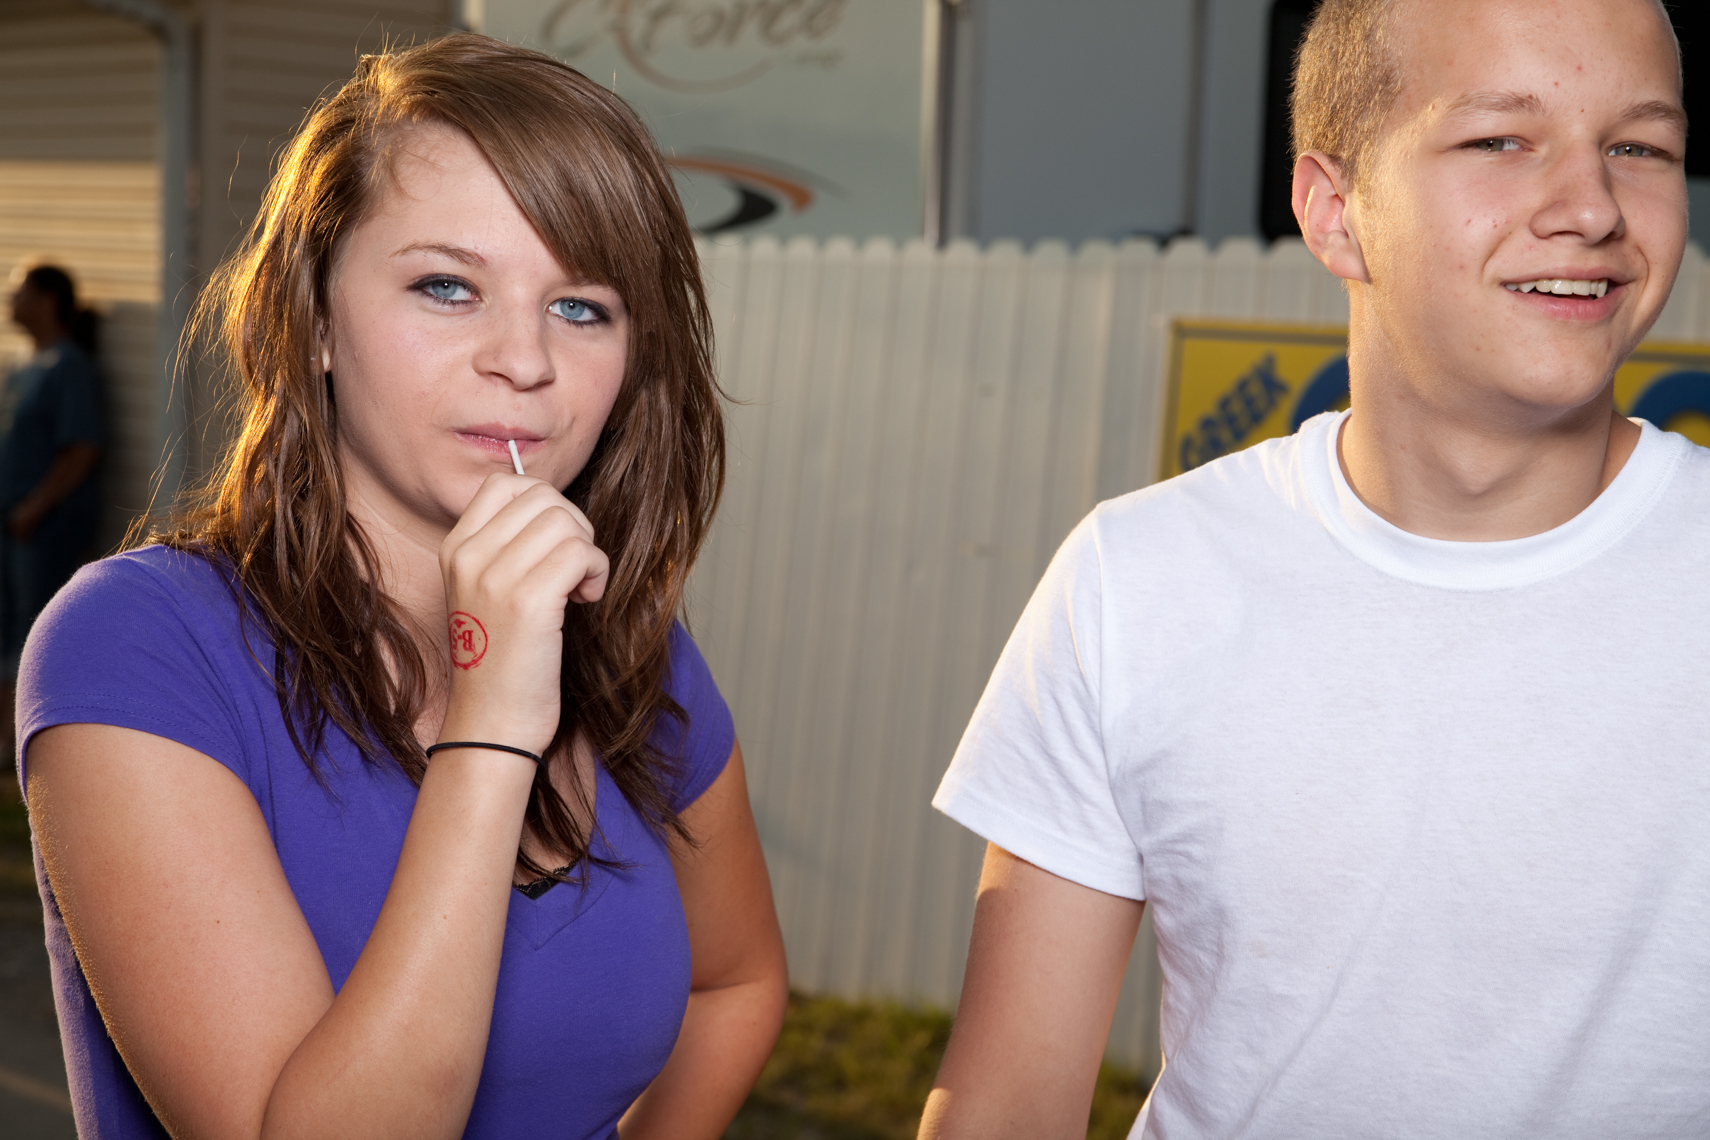 Young teen couple, Wilson County Fair, Lebanon, Tennessee, carnival, amusement park, rural south